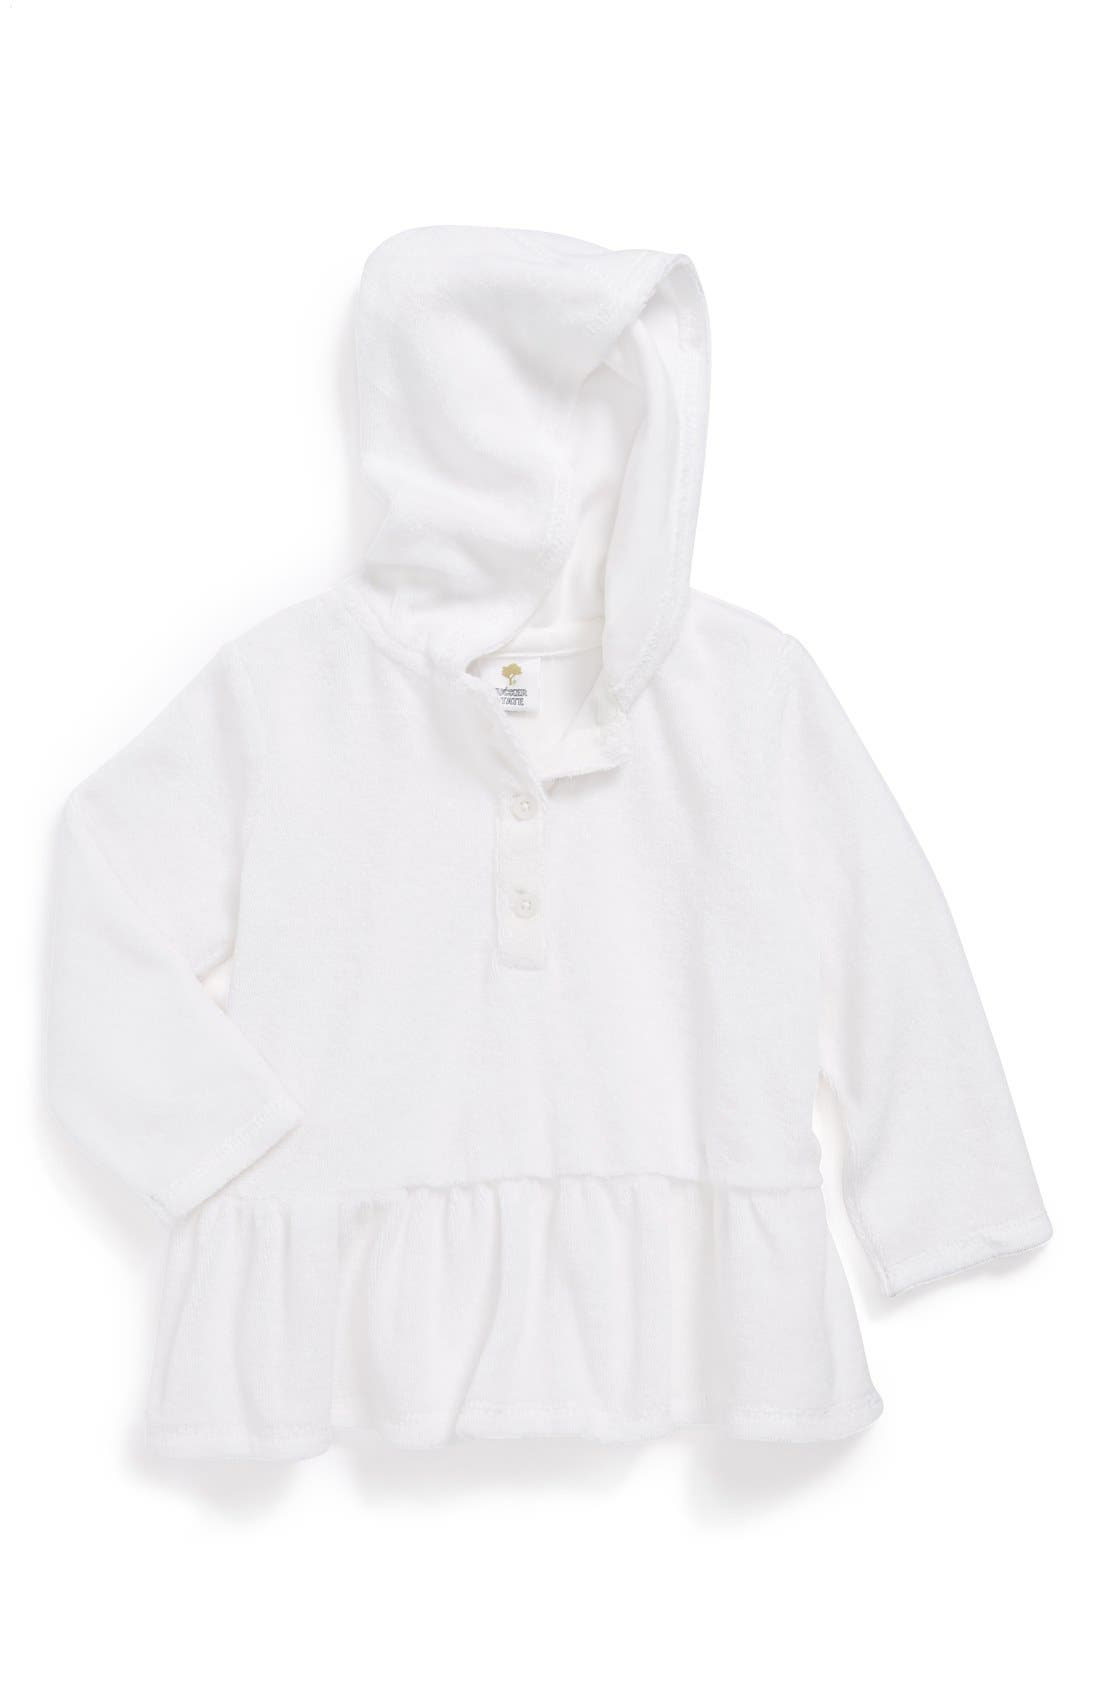 Alternate Image 1 Selected - Tucker + Tate Hooded Terry Cloth Cover-Up (Baby Girls)